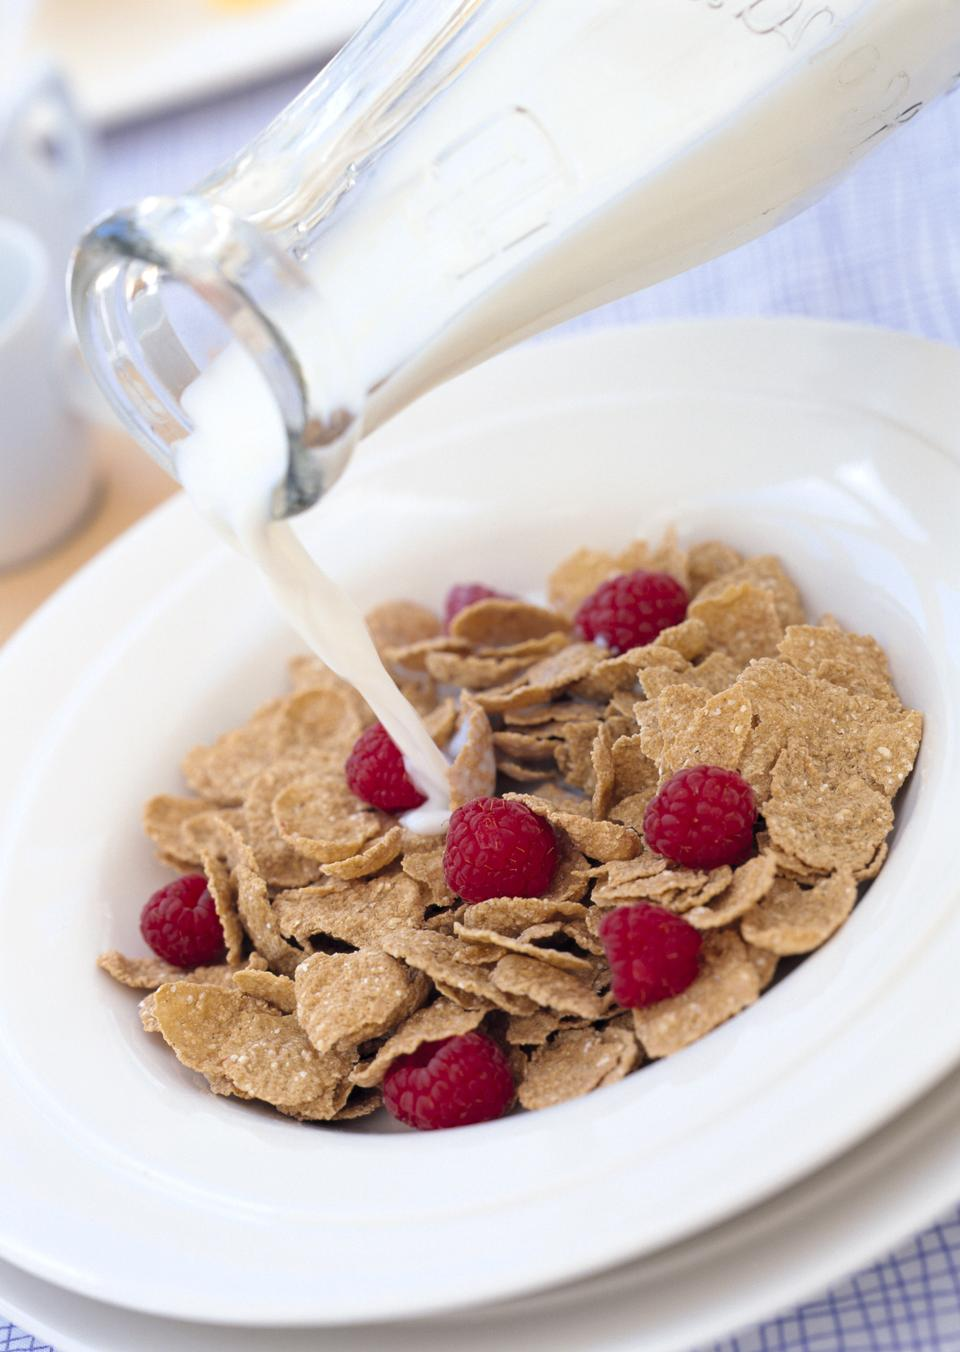 cornflakes with berry